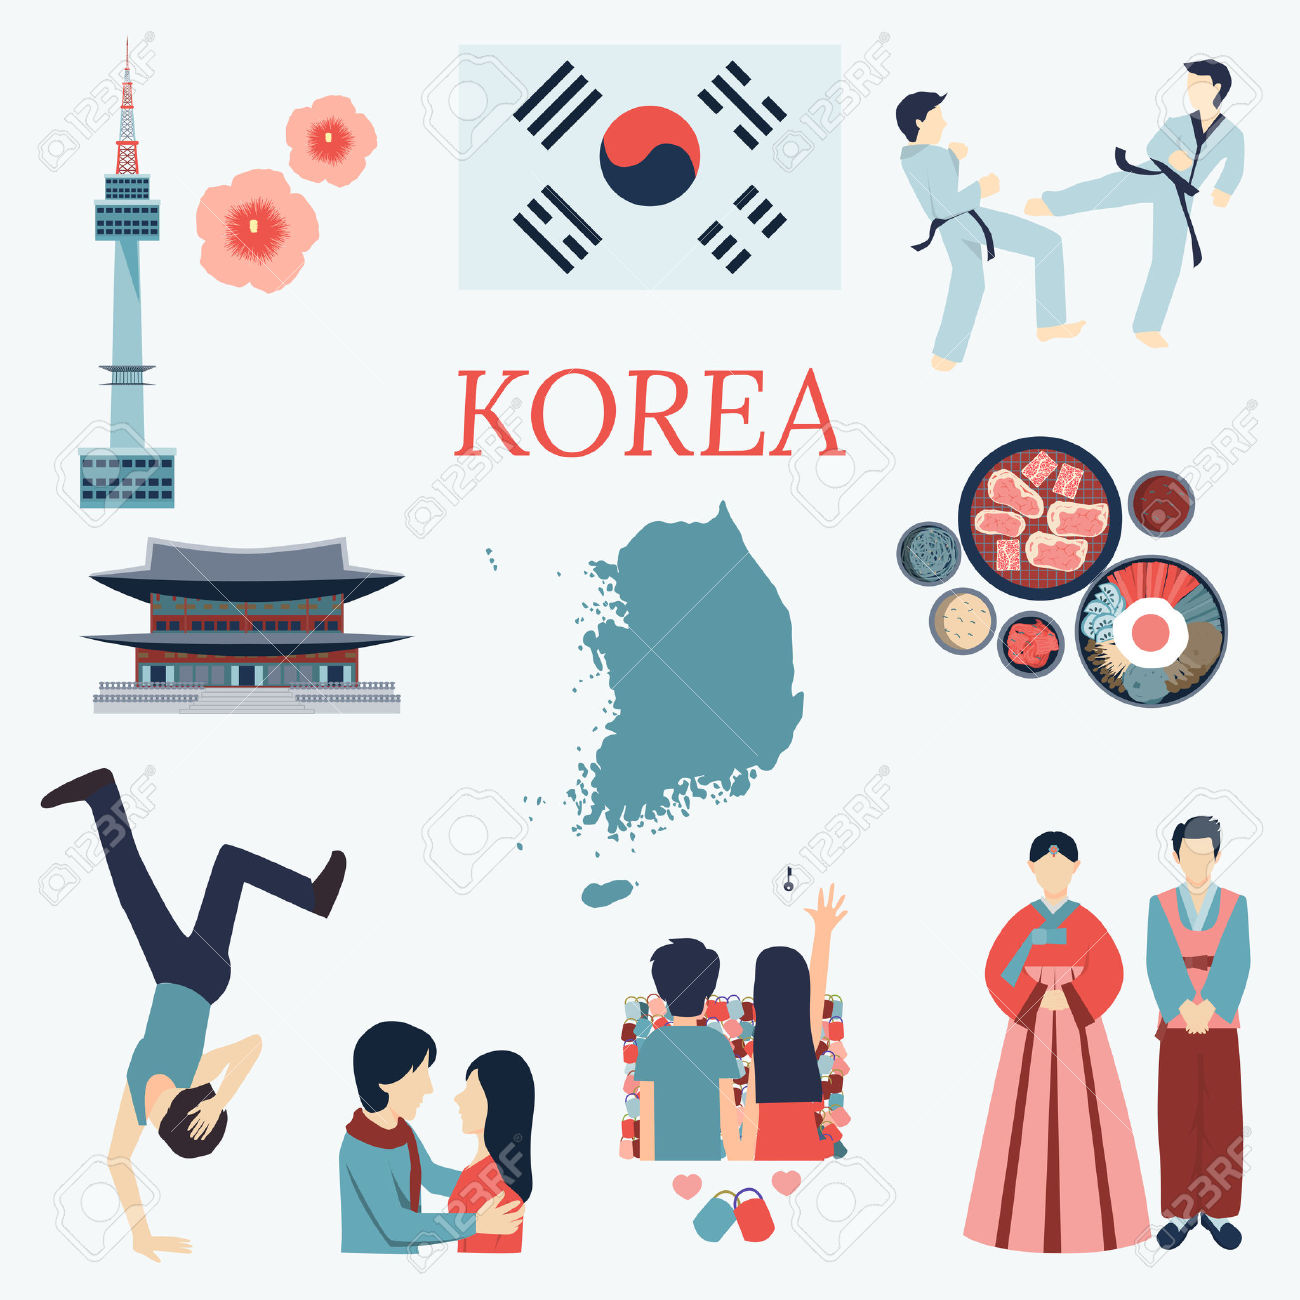 All About Korea. Flat Design Elements. KPOP Korean Seriesflag.